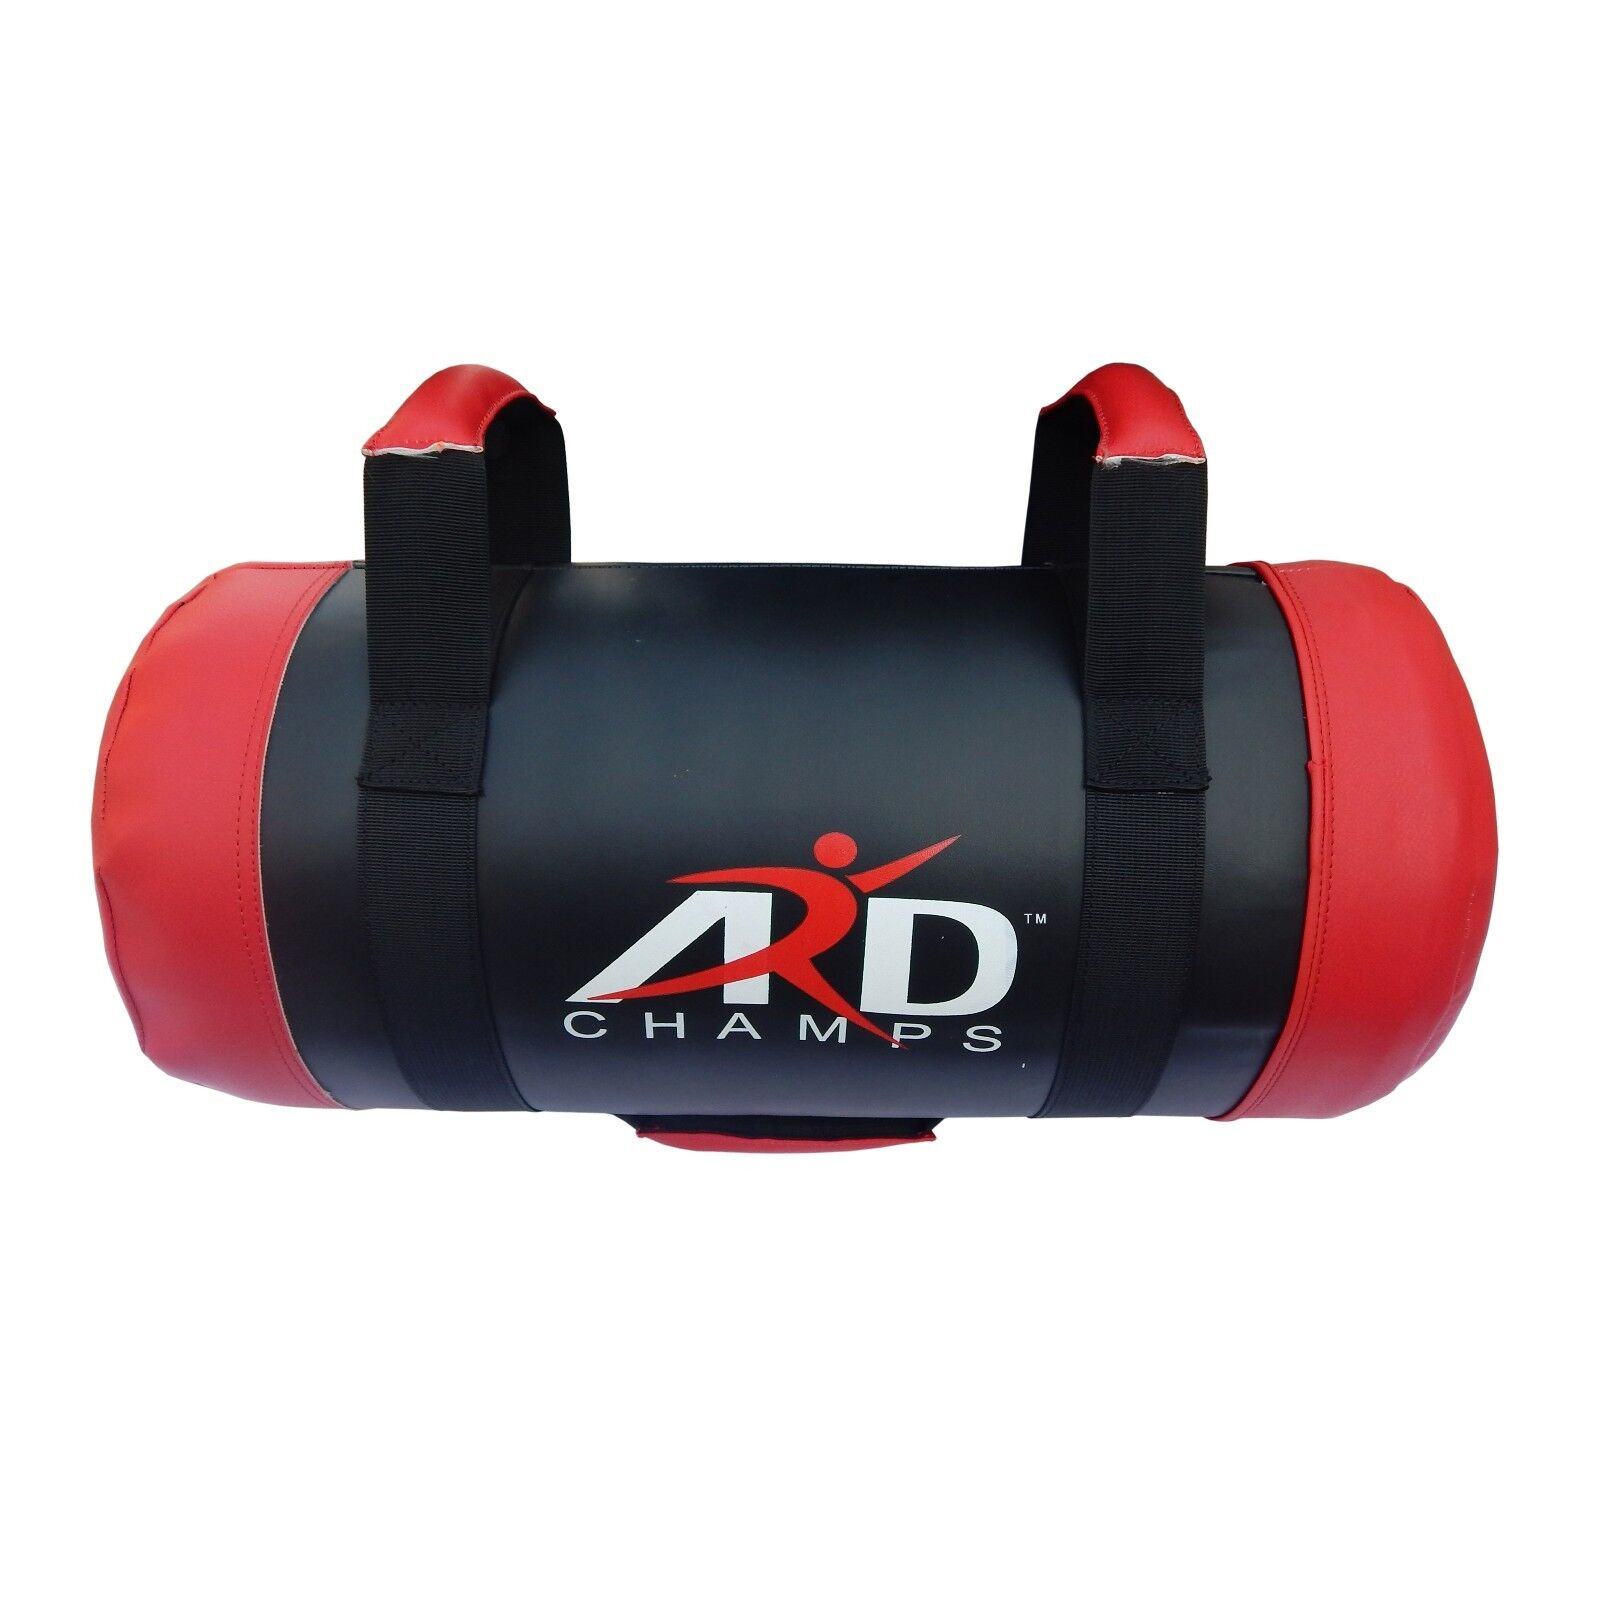 4Fit™ Weighted Power Sand Bag Training Workout Strength  Exercise Fitness 10-25Kg  large selection